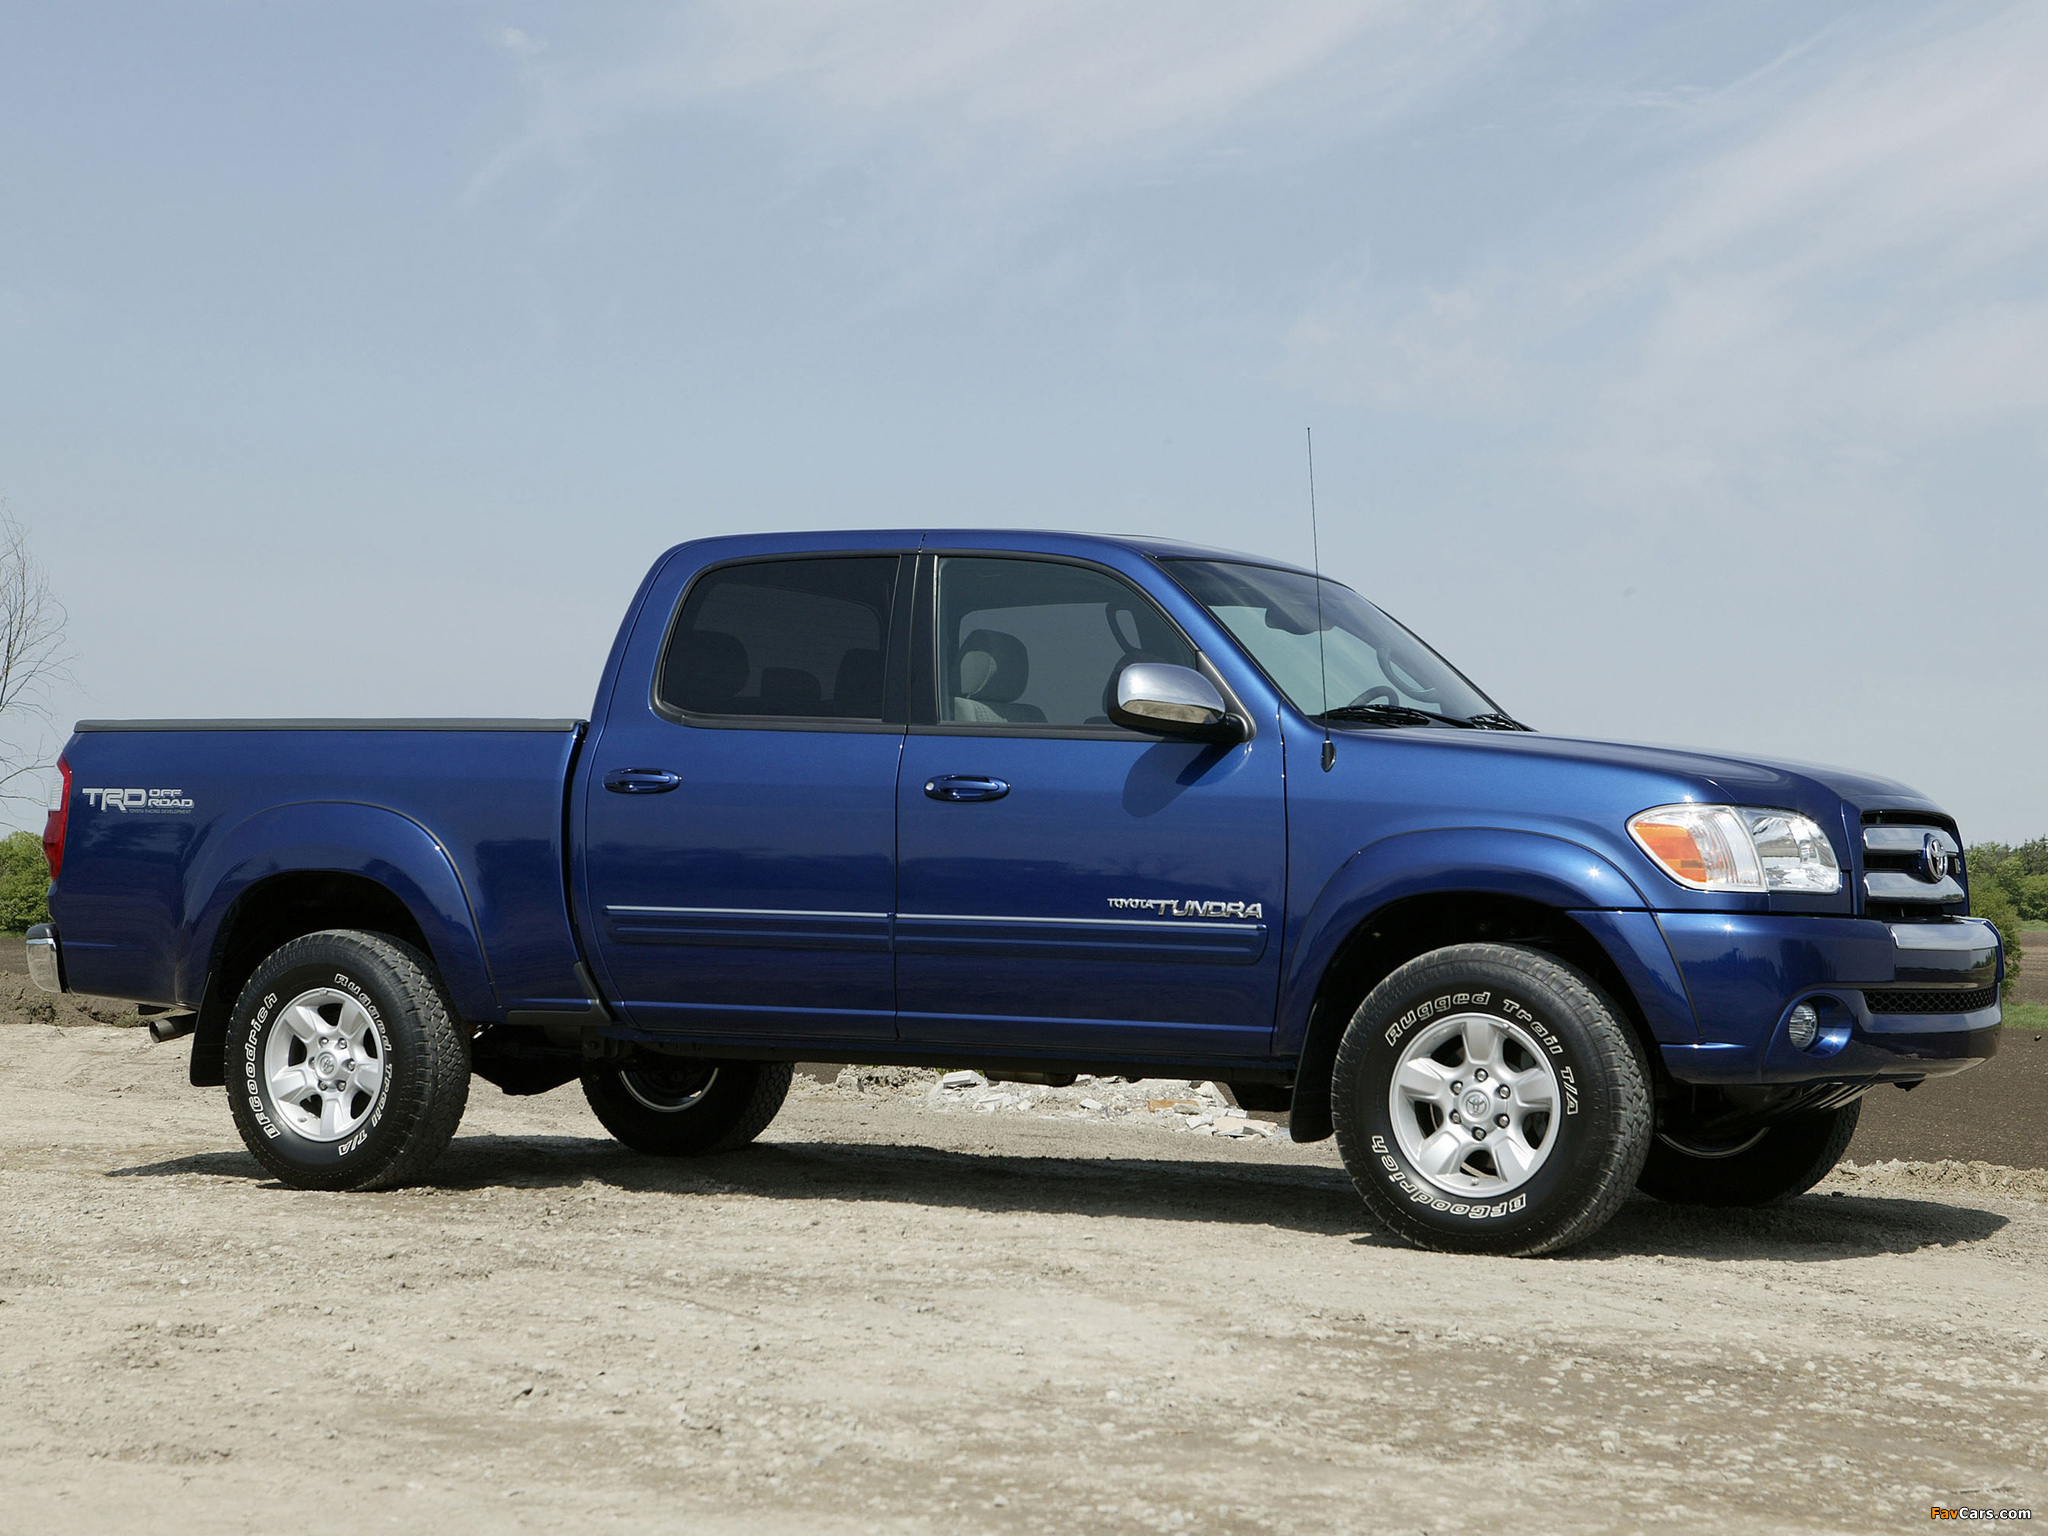 Trd toyota tundra double cab limited off road edition 2003 06 wallpapers 2048